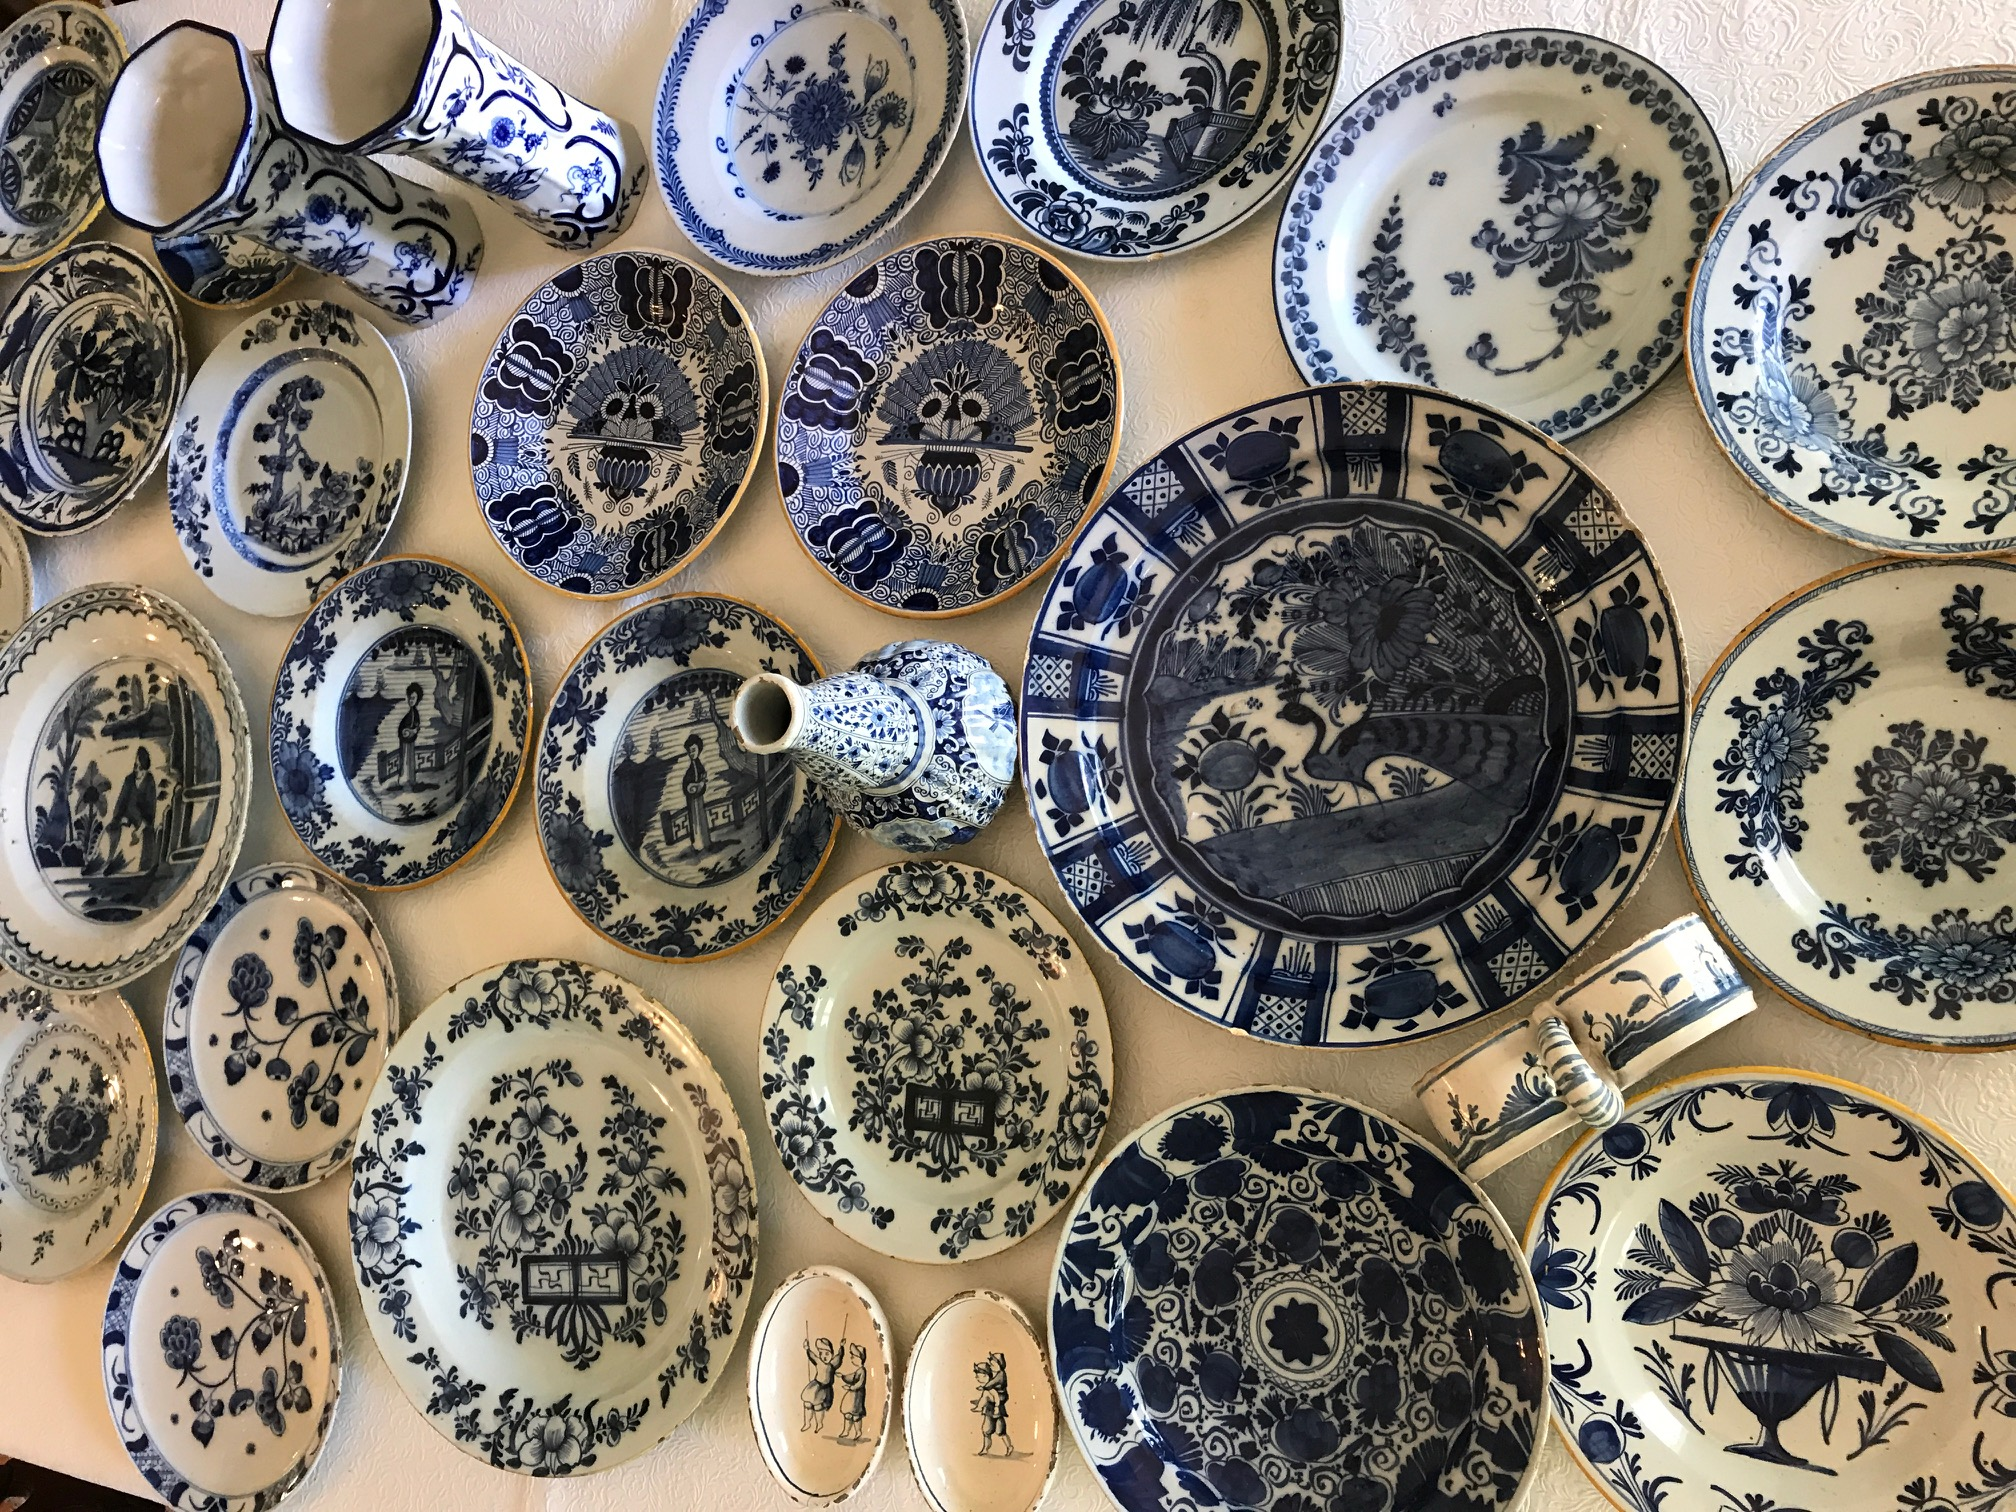 Antique Delft Shipment Has Arrived!